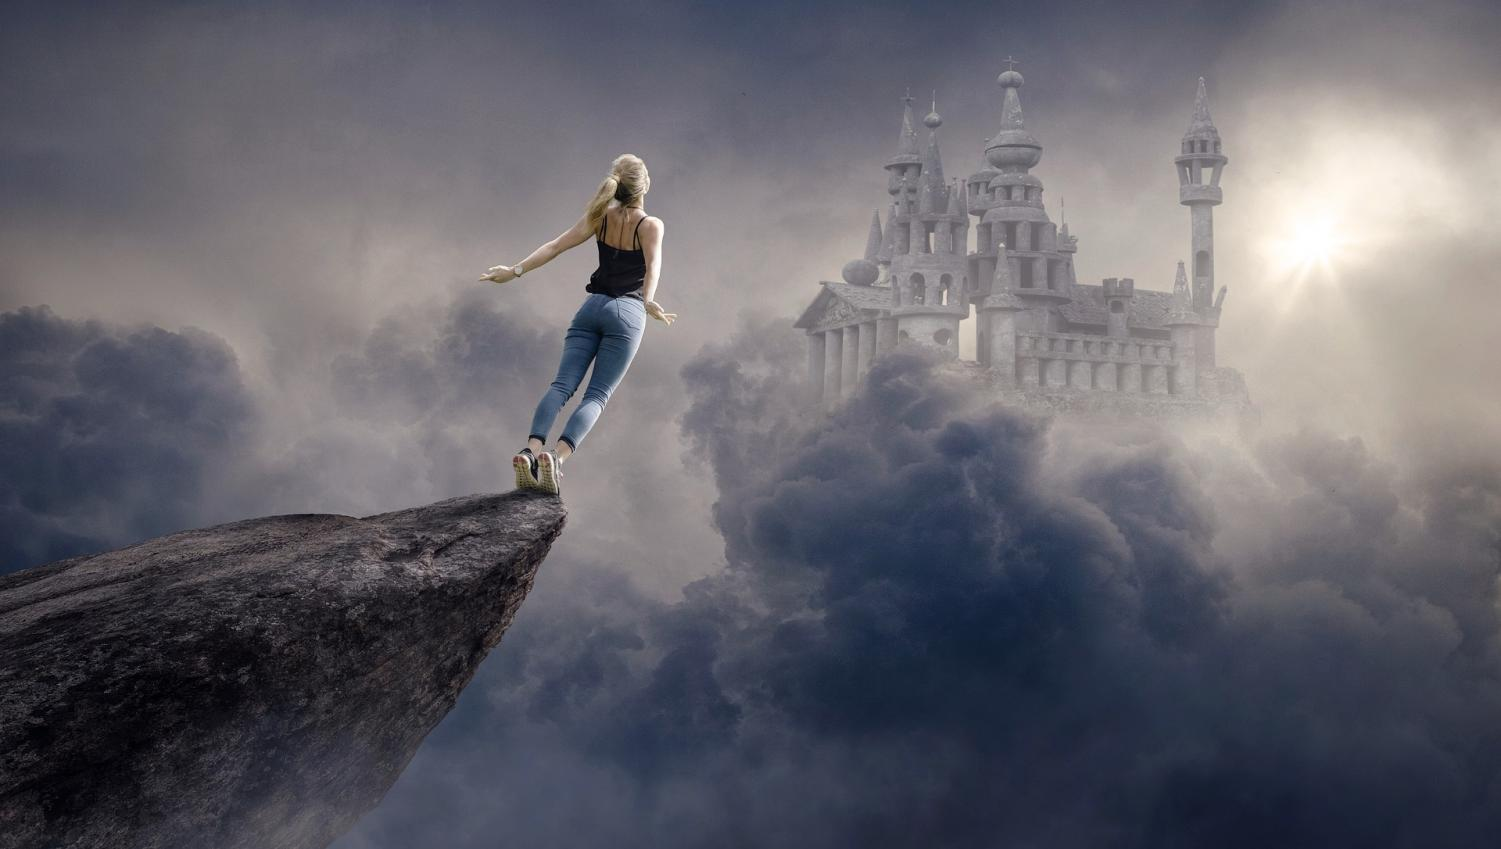 A woman on the edge of a cliff